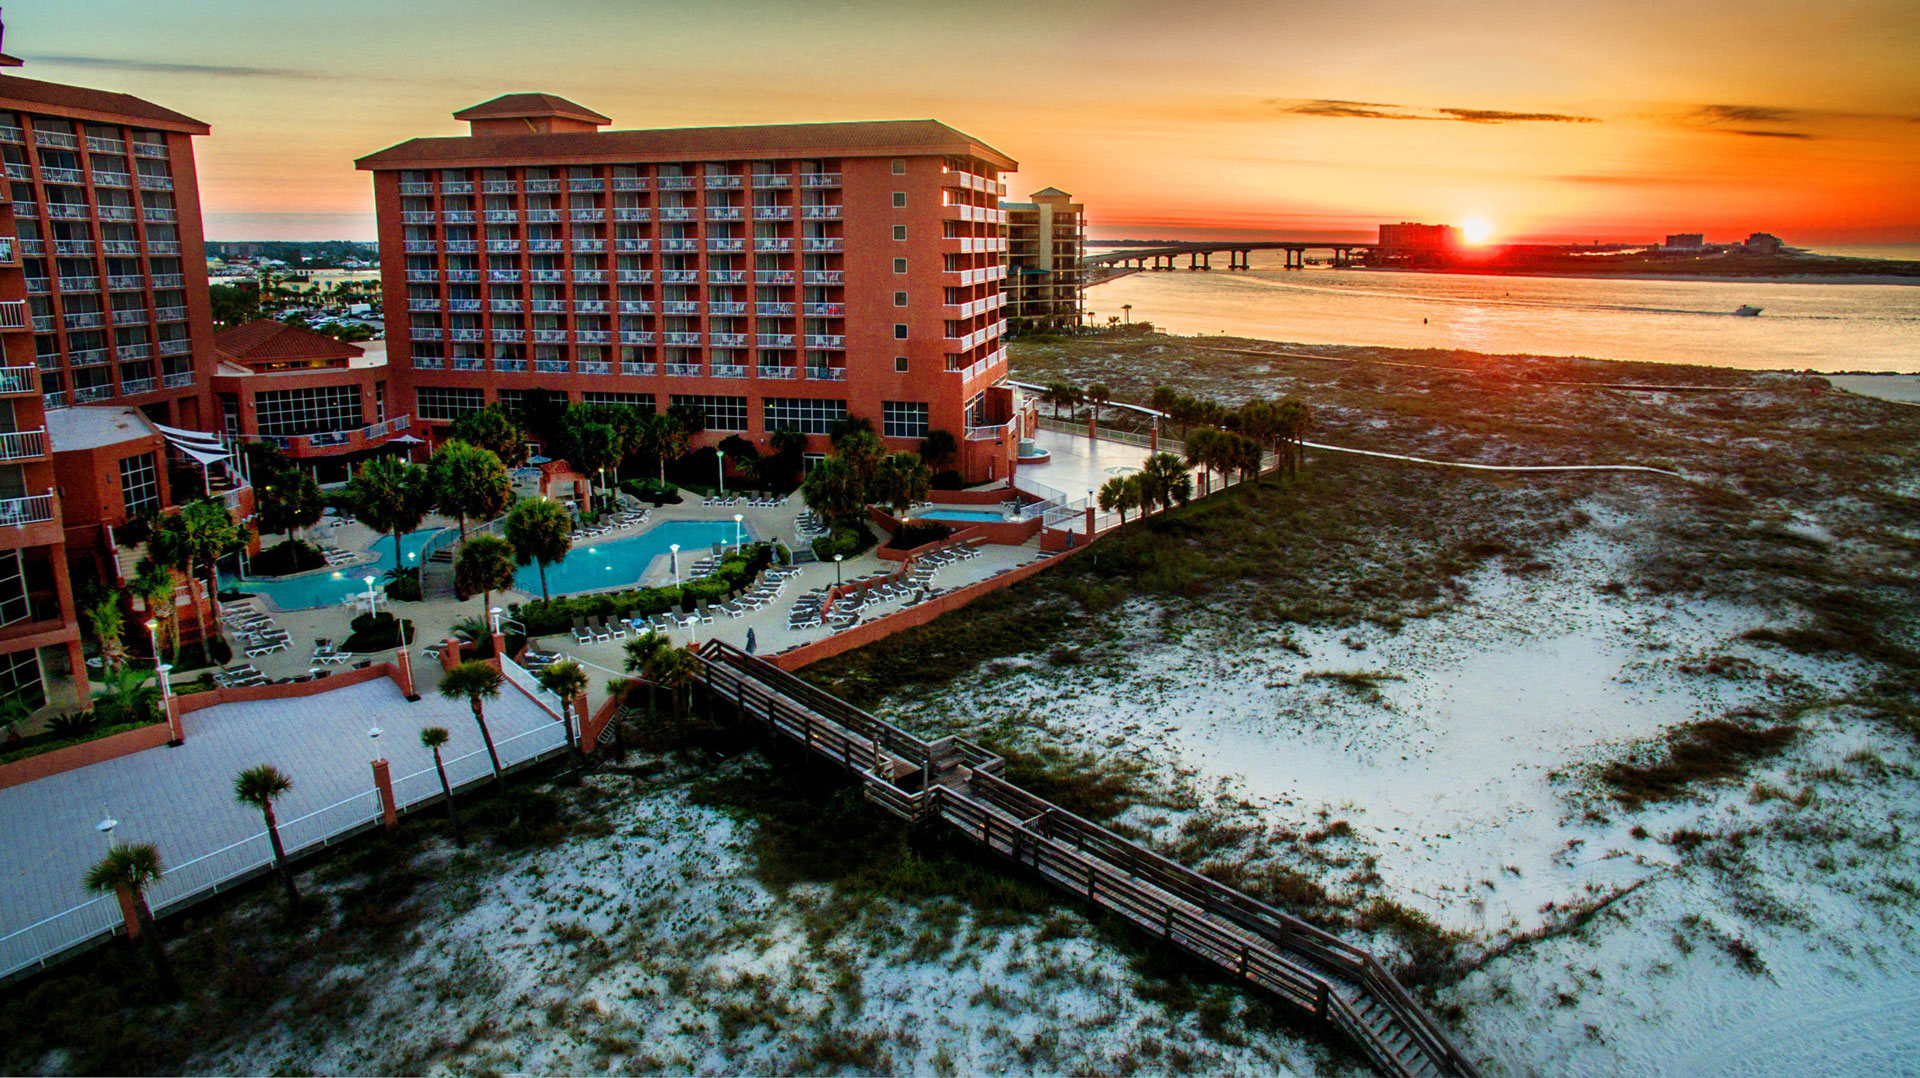 sun rising beside Perdido beach resort